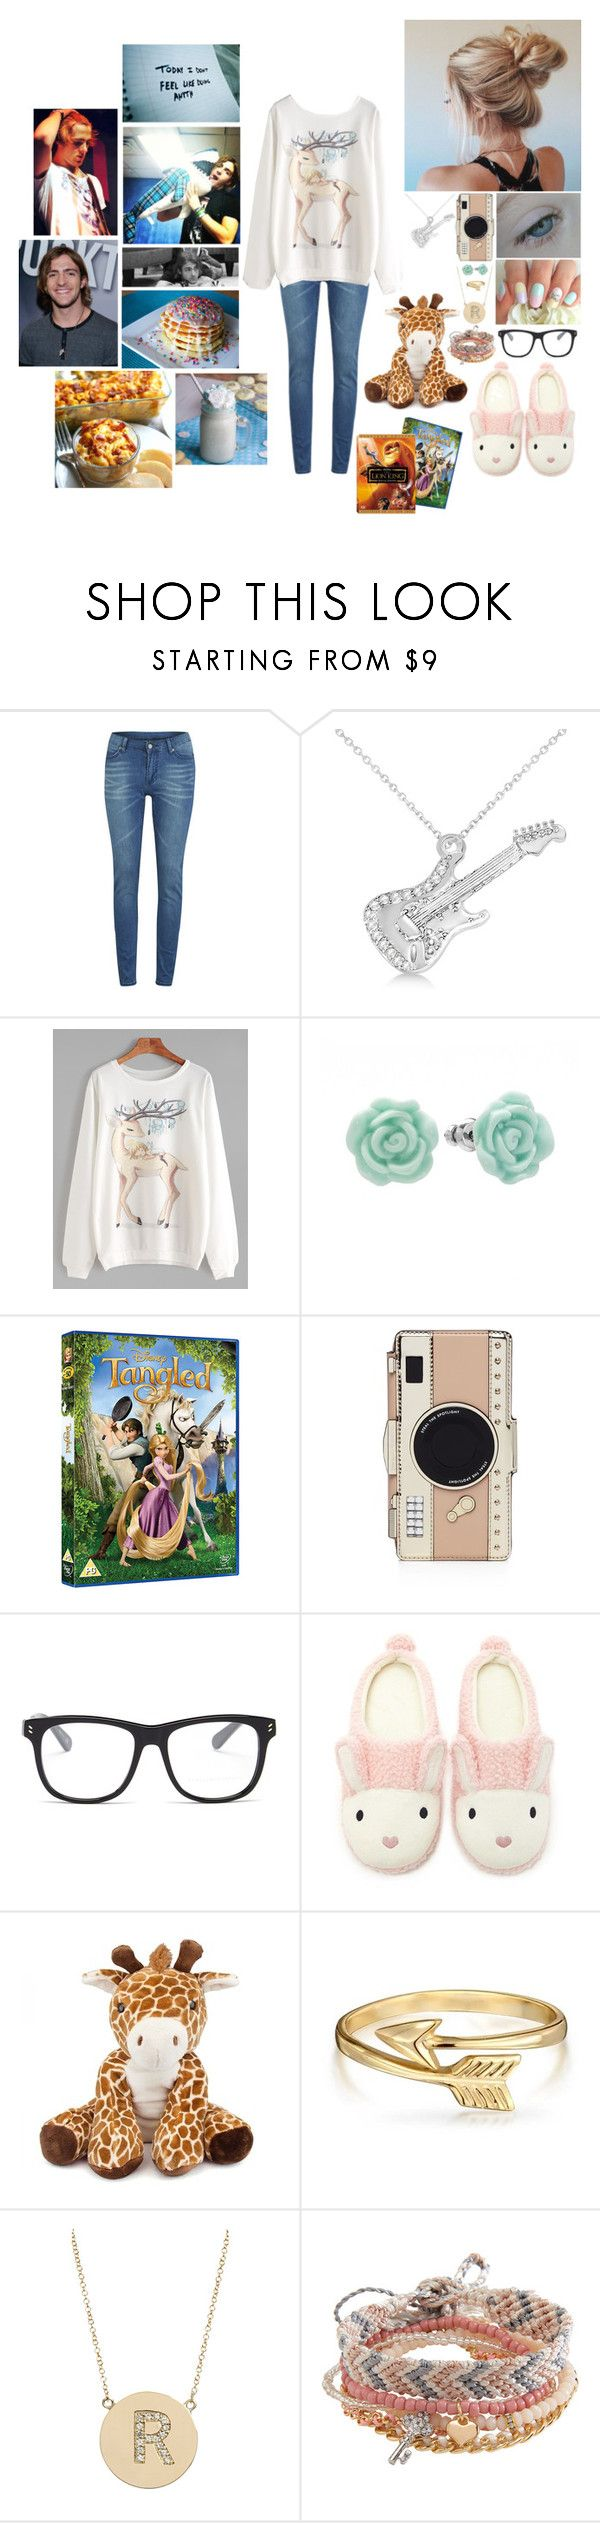 """""""Rebecca's Lazy Afternoon"""" by alexishambleton on Polyvore featuring mode, Cheap Monday, Allurez, LC Lauren Conrad, Kate Spade, STELLA McCARTNEY, Forever 21, Bling Jewelry, Jennifer Meyer Jewelry et Aéropostale"""